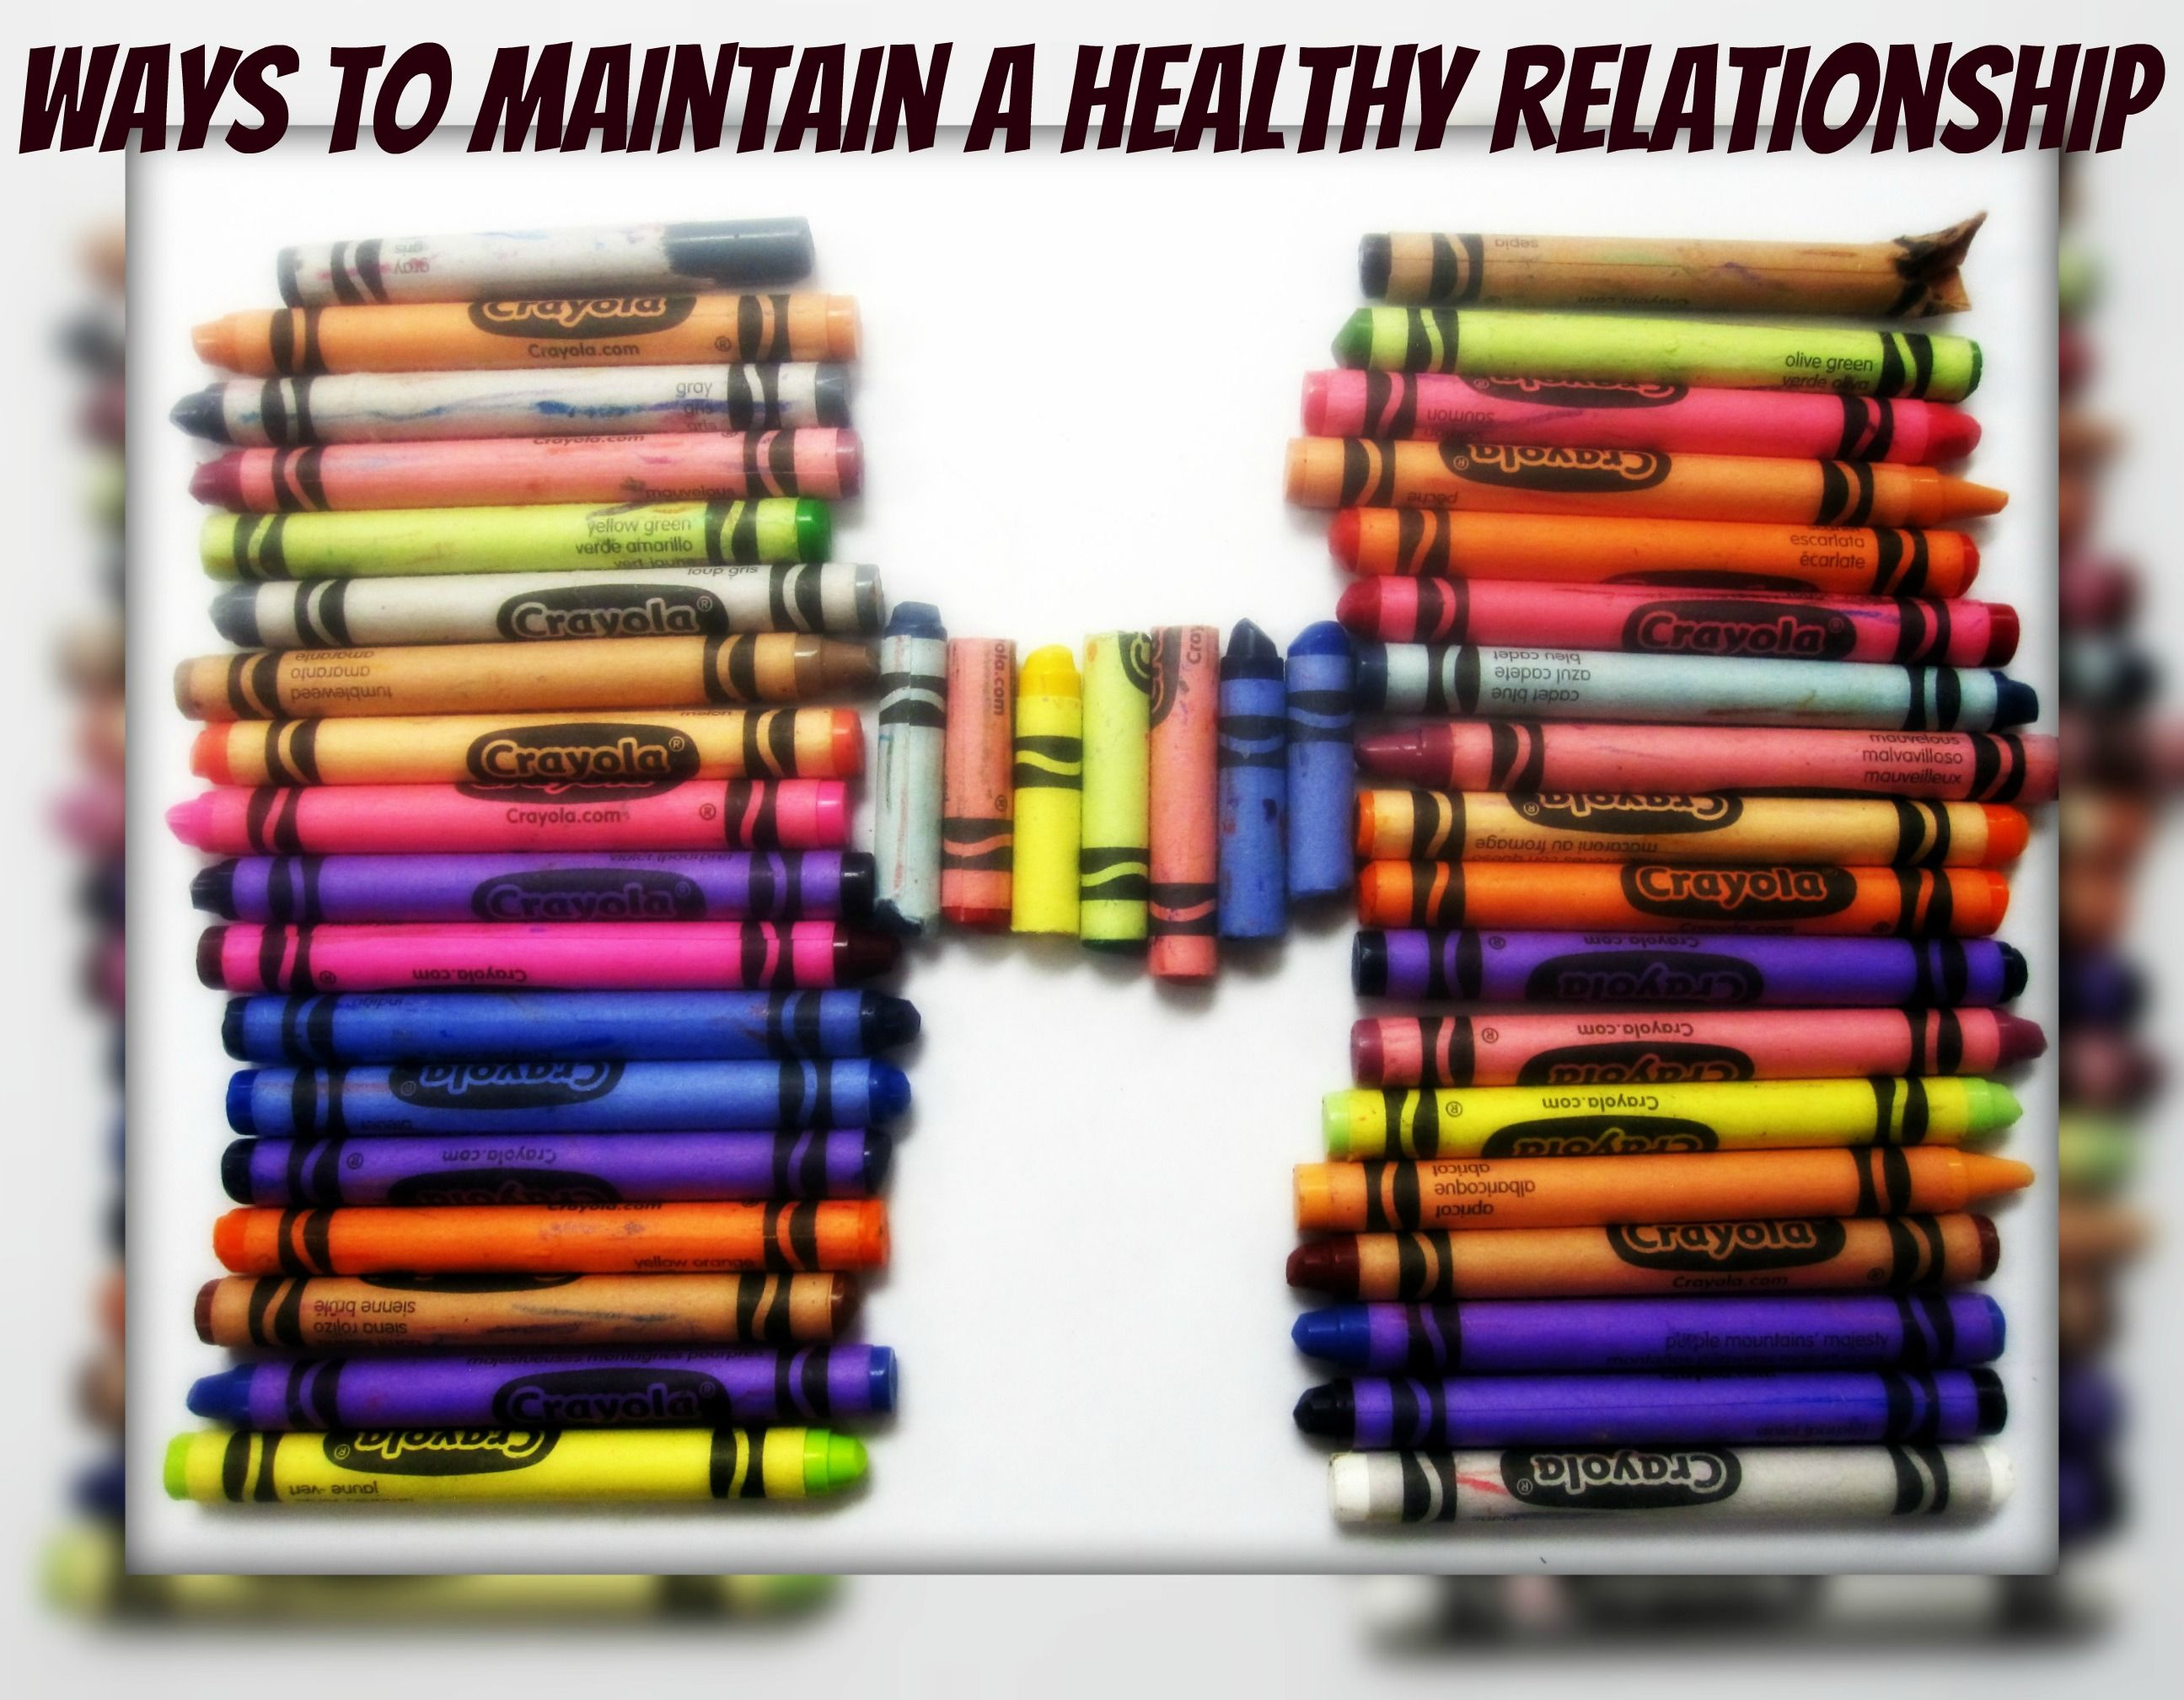 Top 10 Ways to Maintain a Healthy Relationship